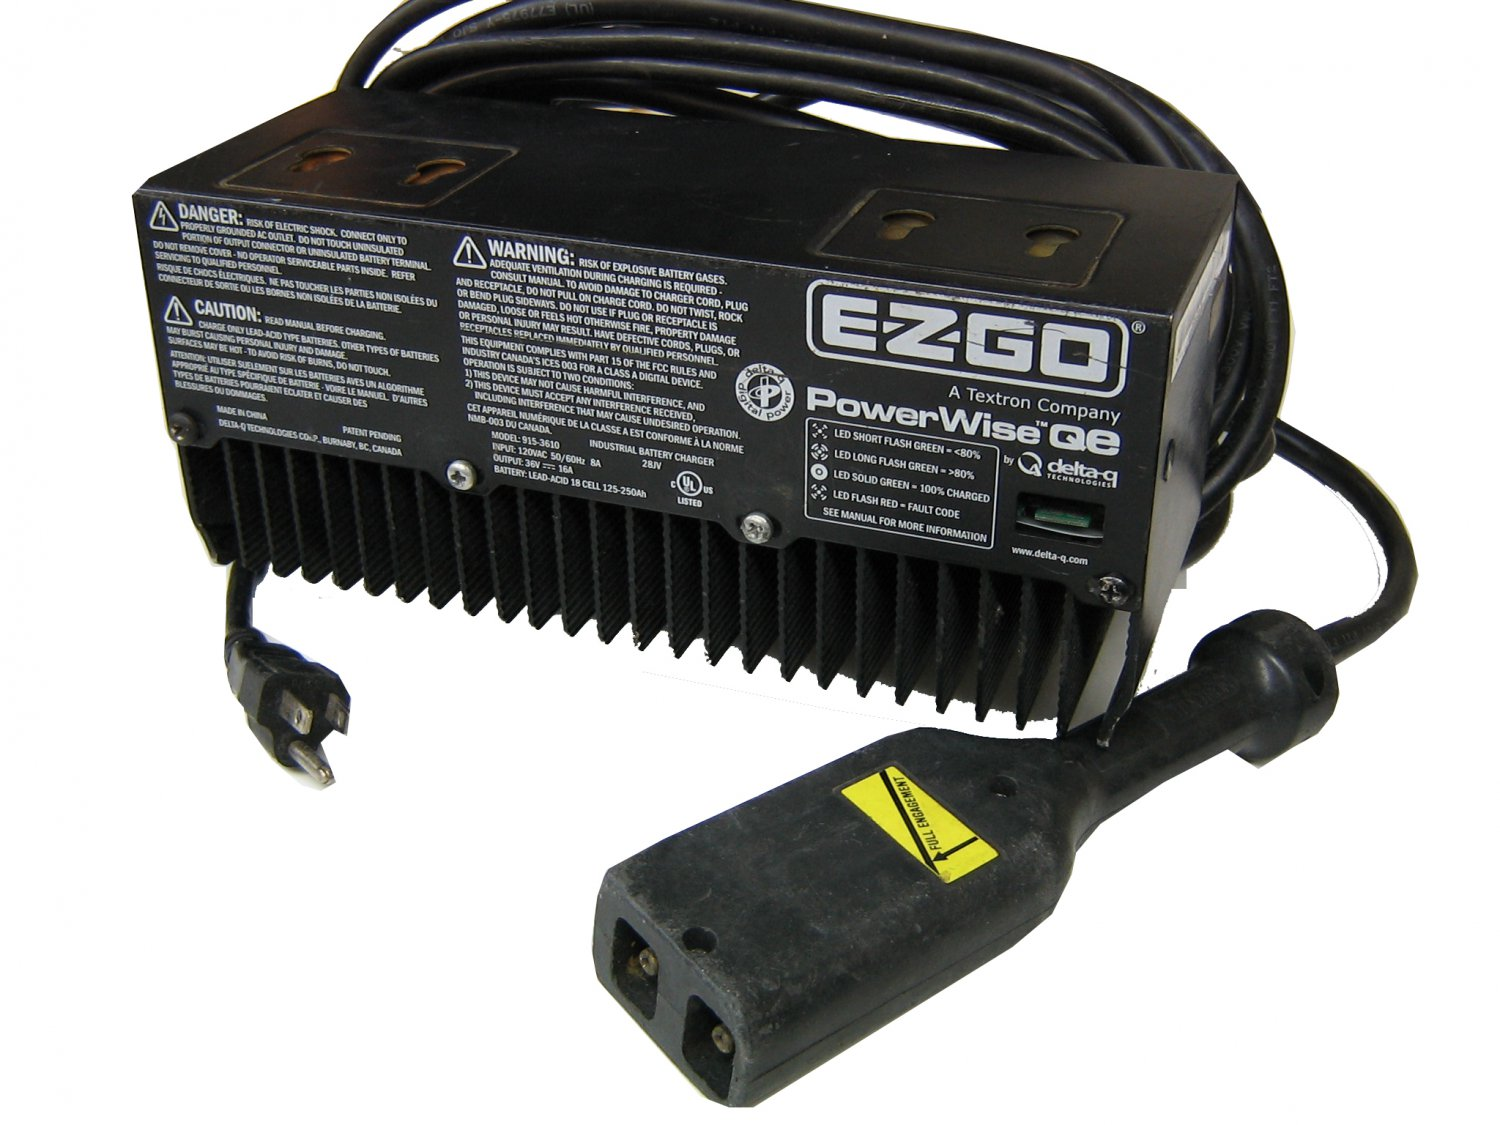 ezgo 36 volt battery wiring diagram ford 460 firing order ez go 915 3610 charger 36v powerwise qe g3610